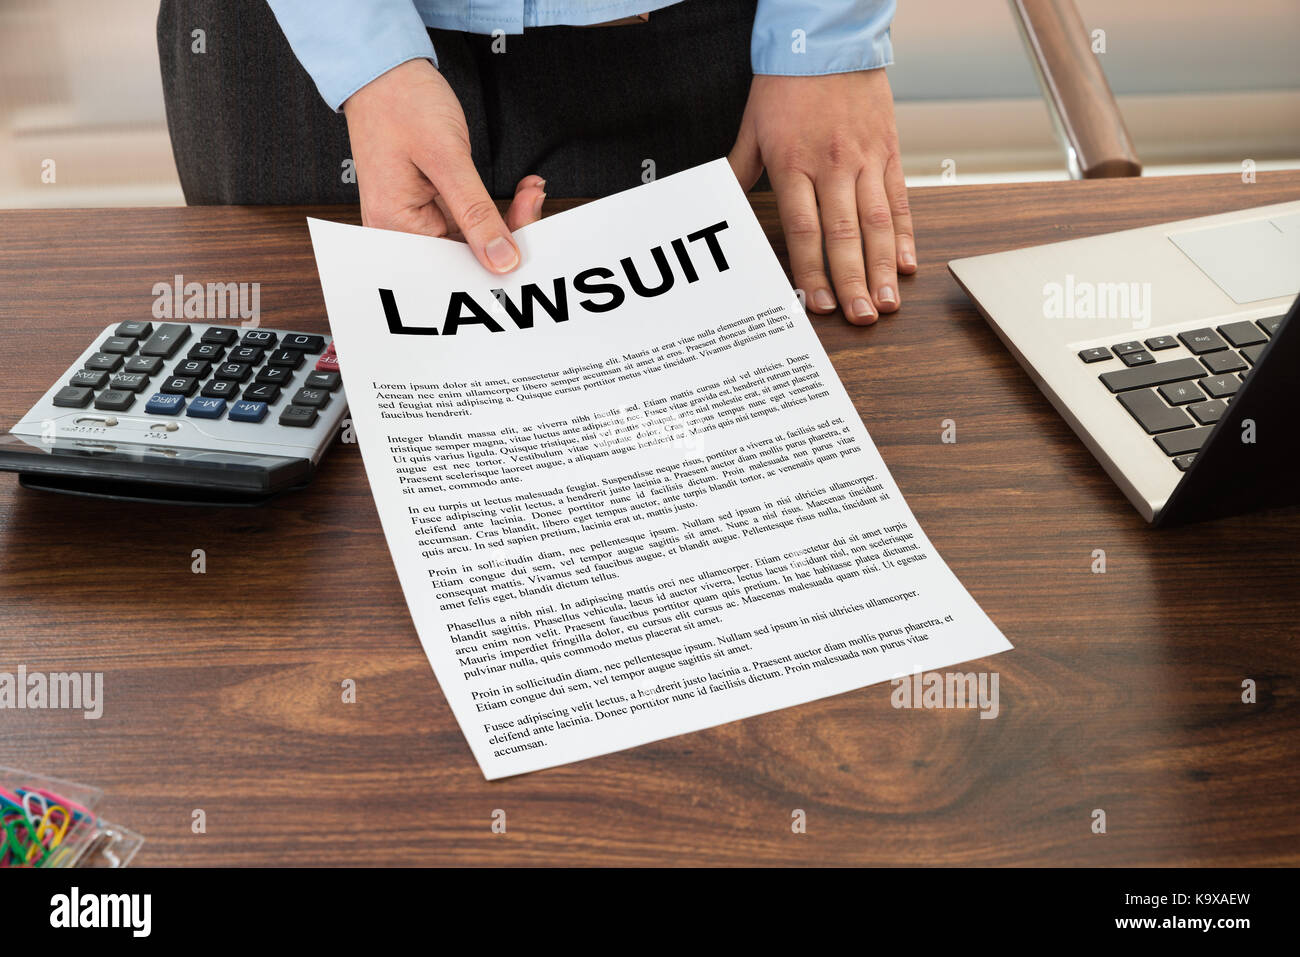 Counselor At Law Stock Photos Counselor At Law Stock Images Alamy # Muebles Nisi Bogota